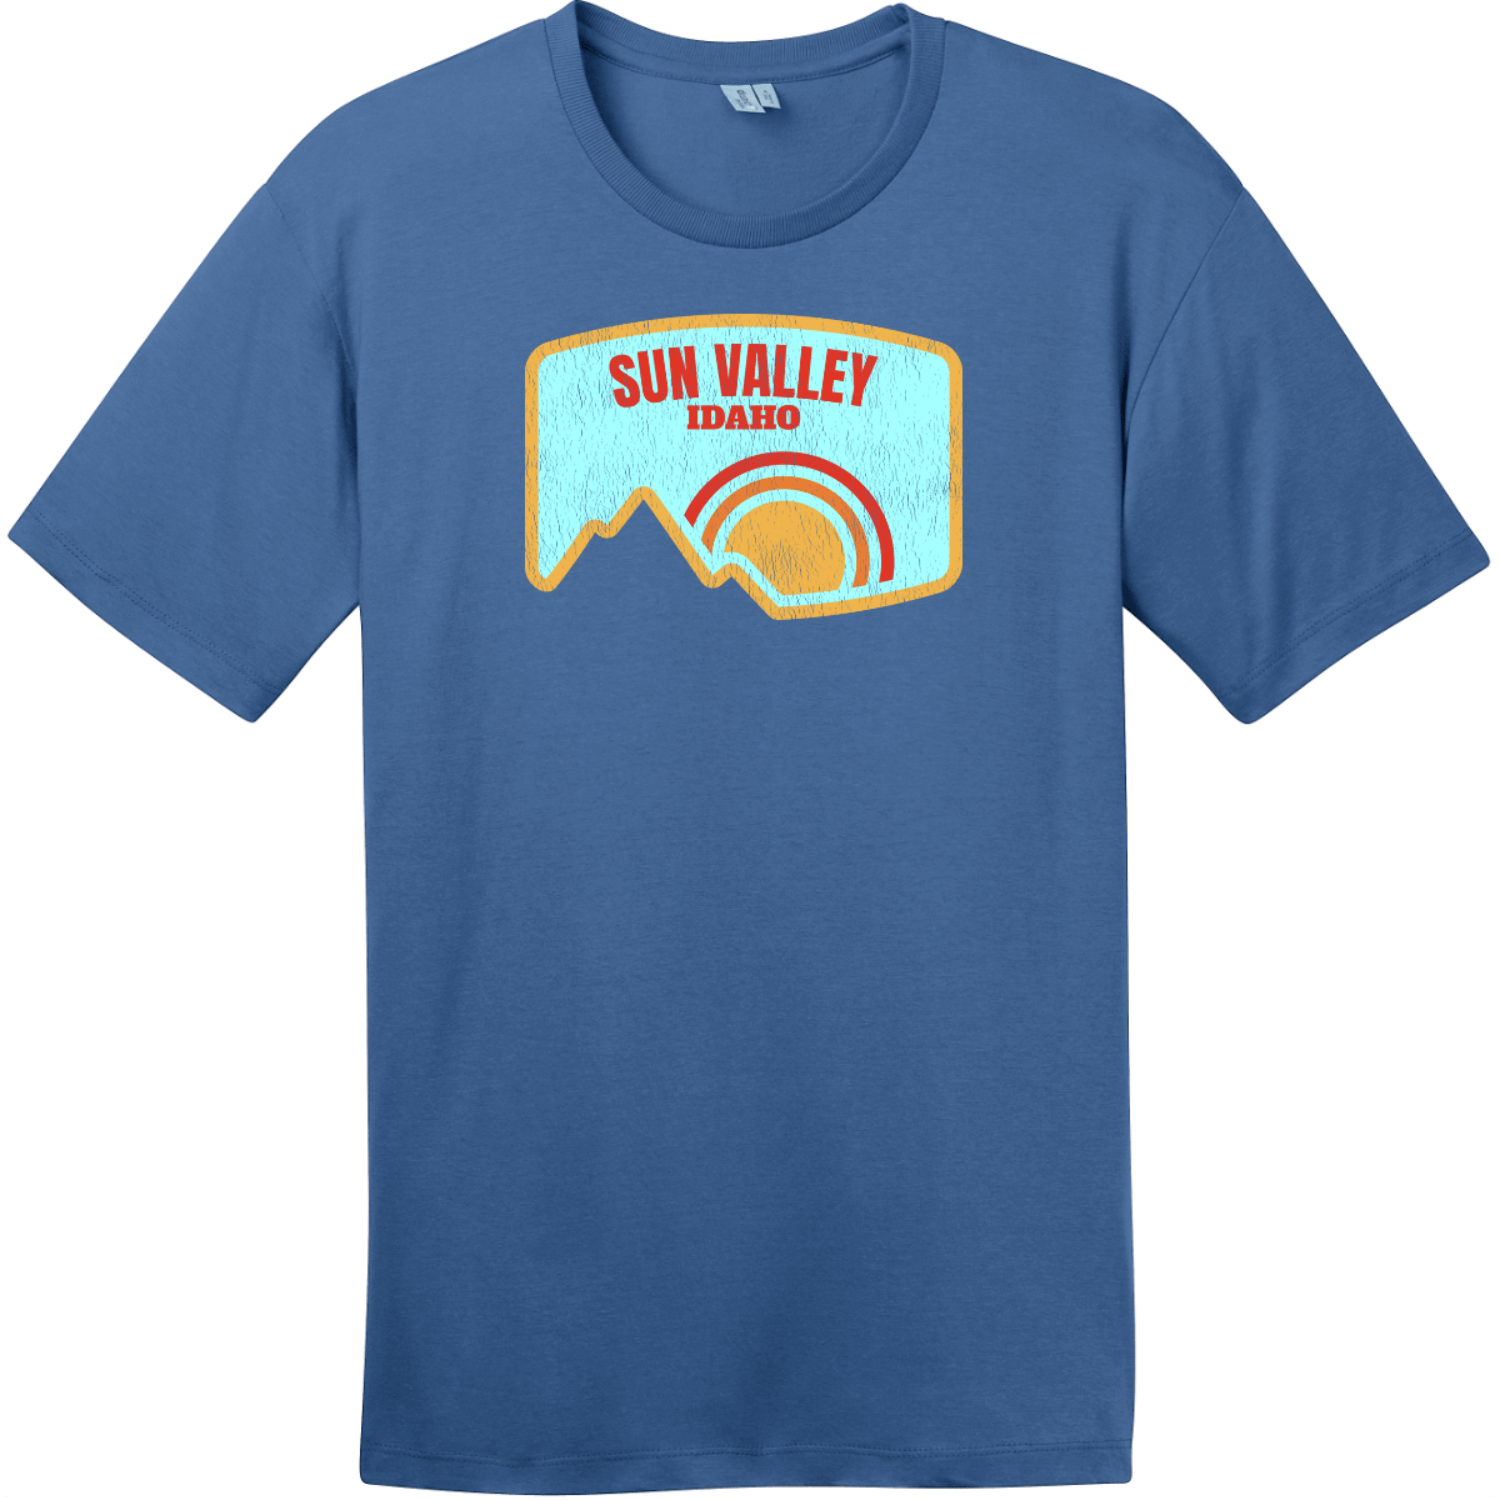 Sun Valley Idaho Mountain Vintage T-Shirt Maritime Blue District Perfect Weight Tee DT104